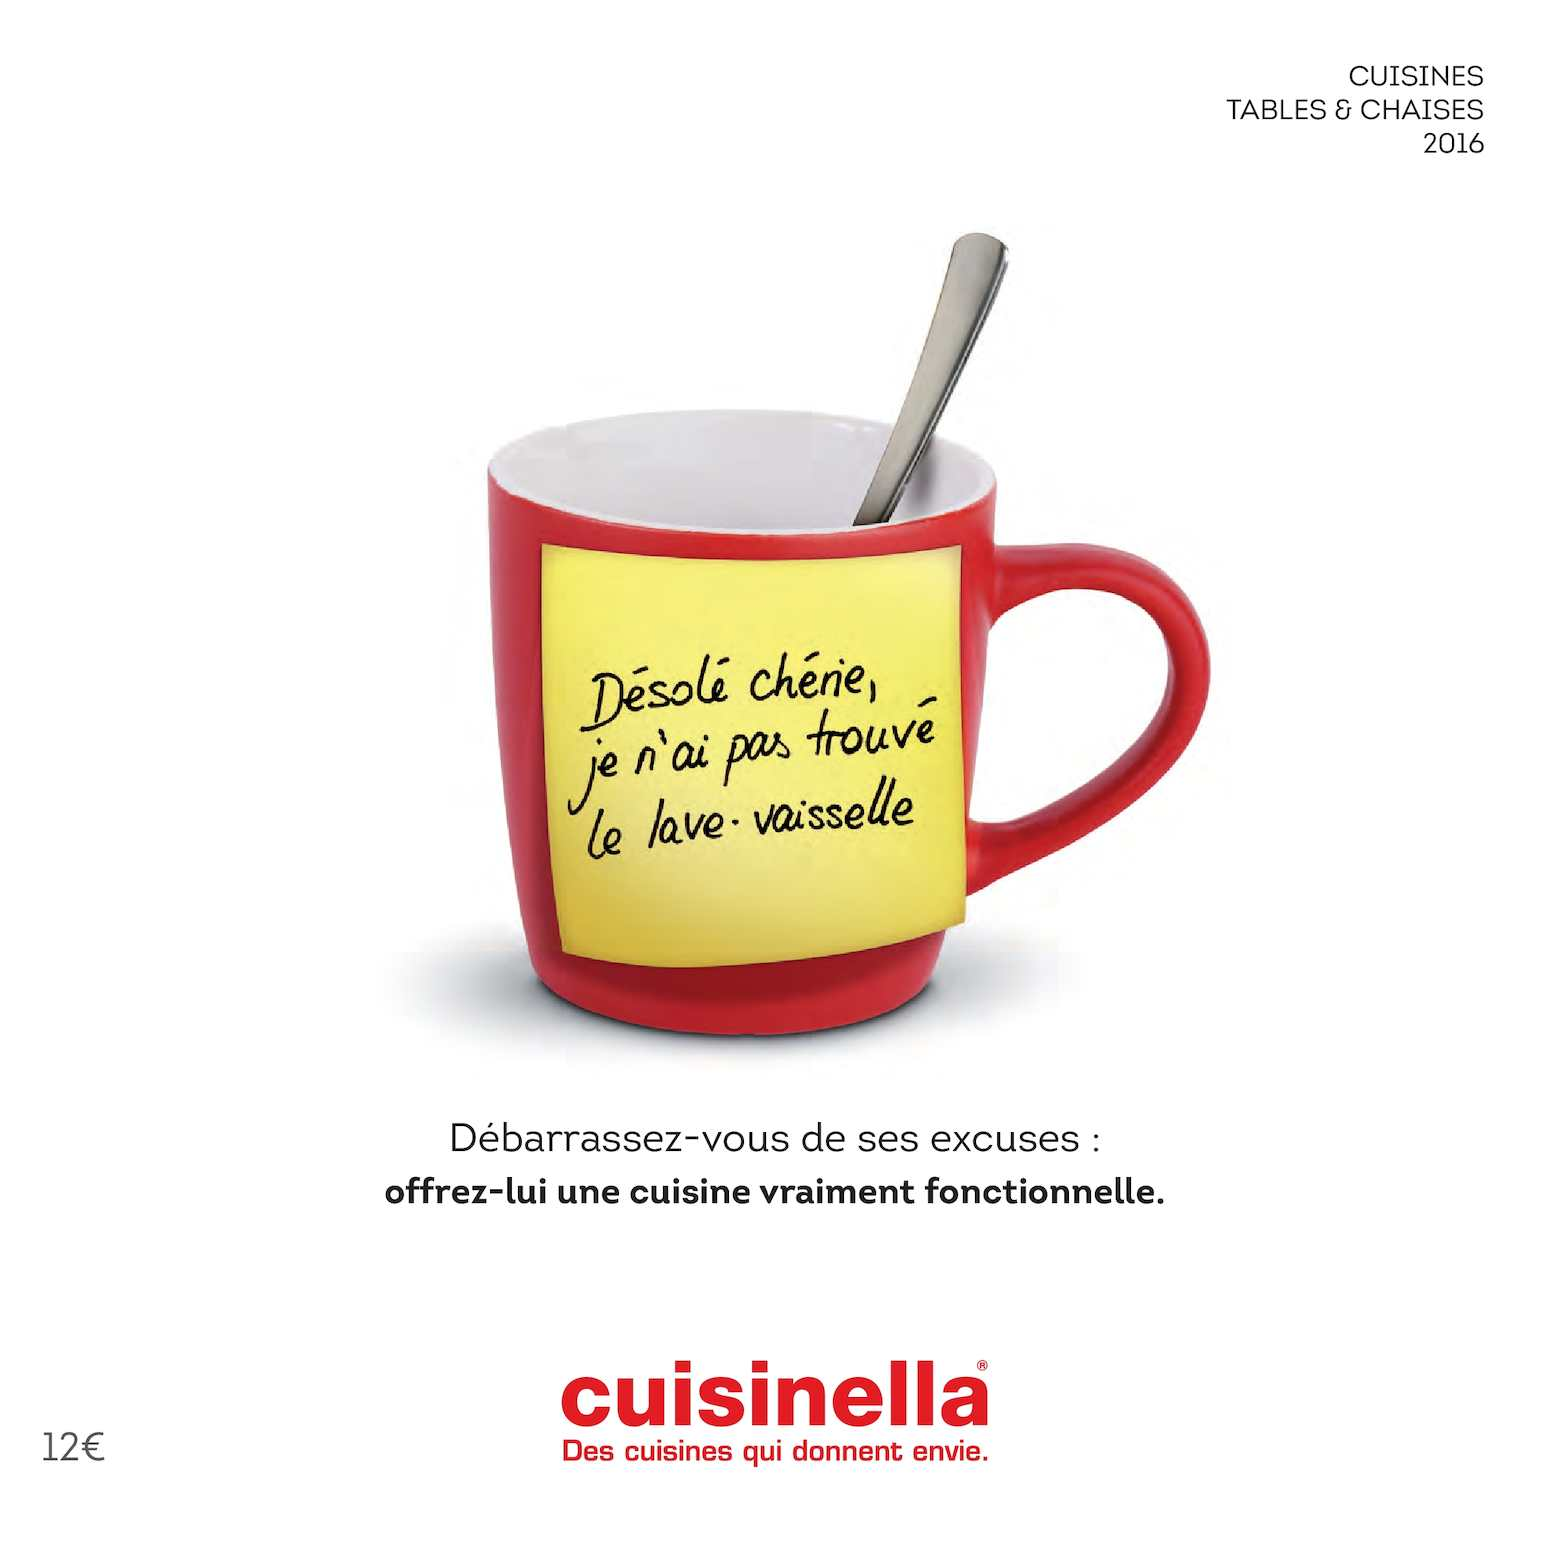 Calam o catalogue cuisinella les cuisines 2016 for Cuisinella com catalogue